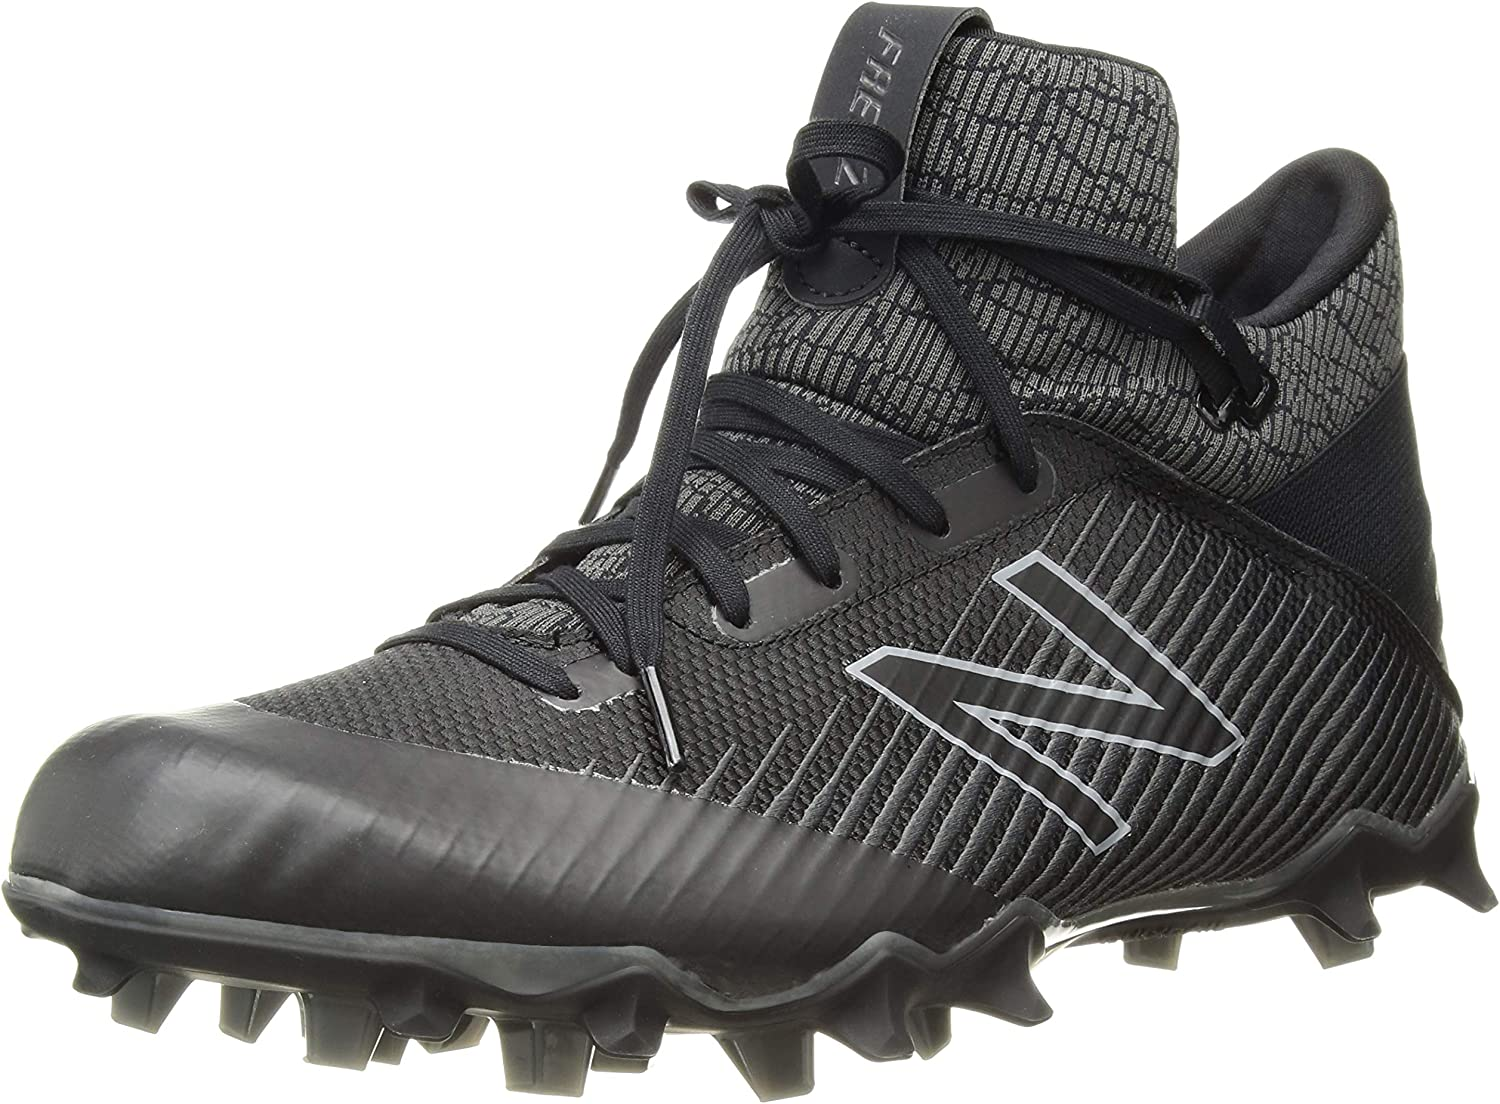 New Balance Men's Freeze V2 Agility Running shoes